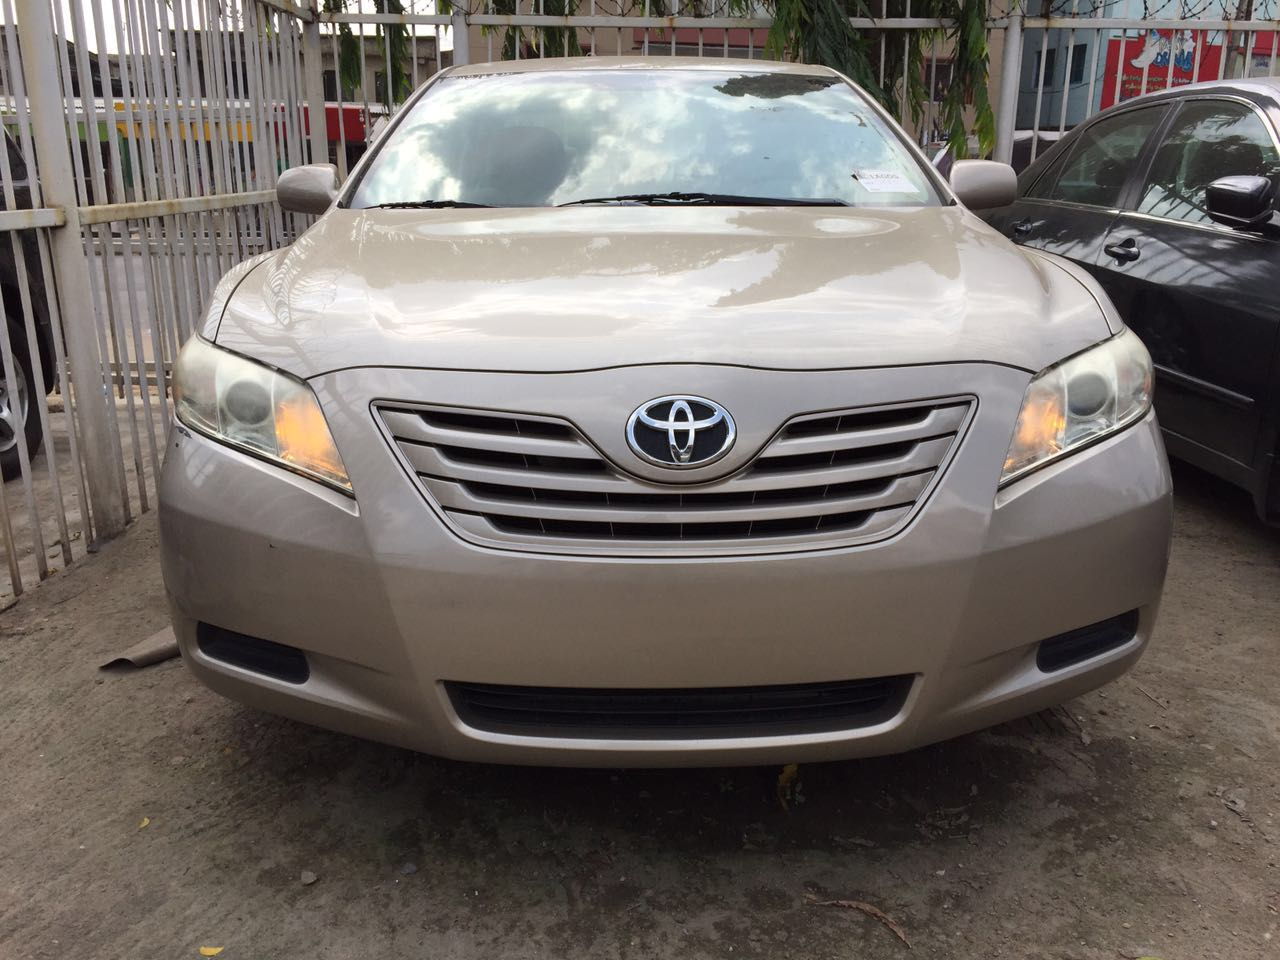 brand new toyota camry price in nigeria perbedaan grand avanza 1.3 dan 1.5 toks 2008 le accident free 4 units available